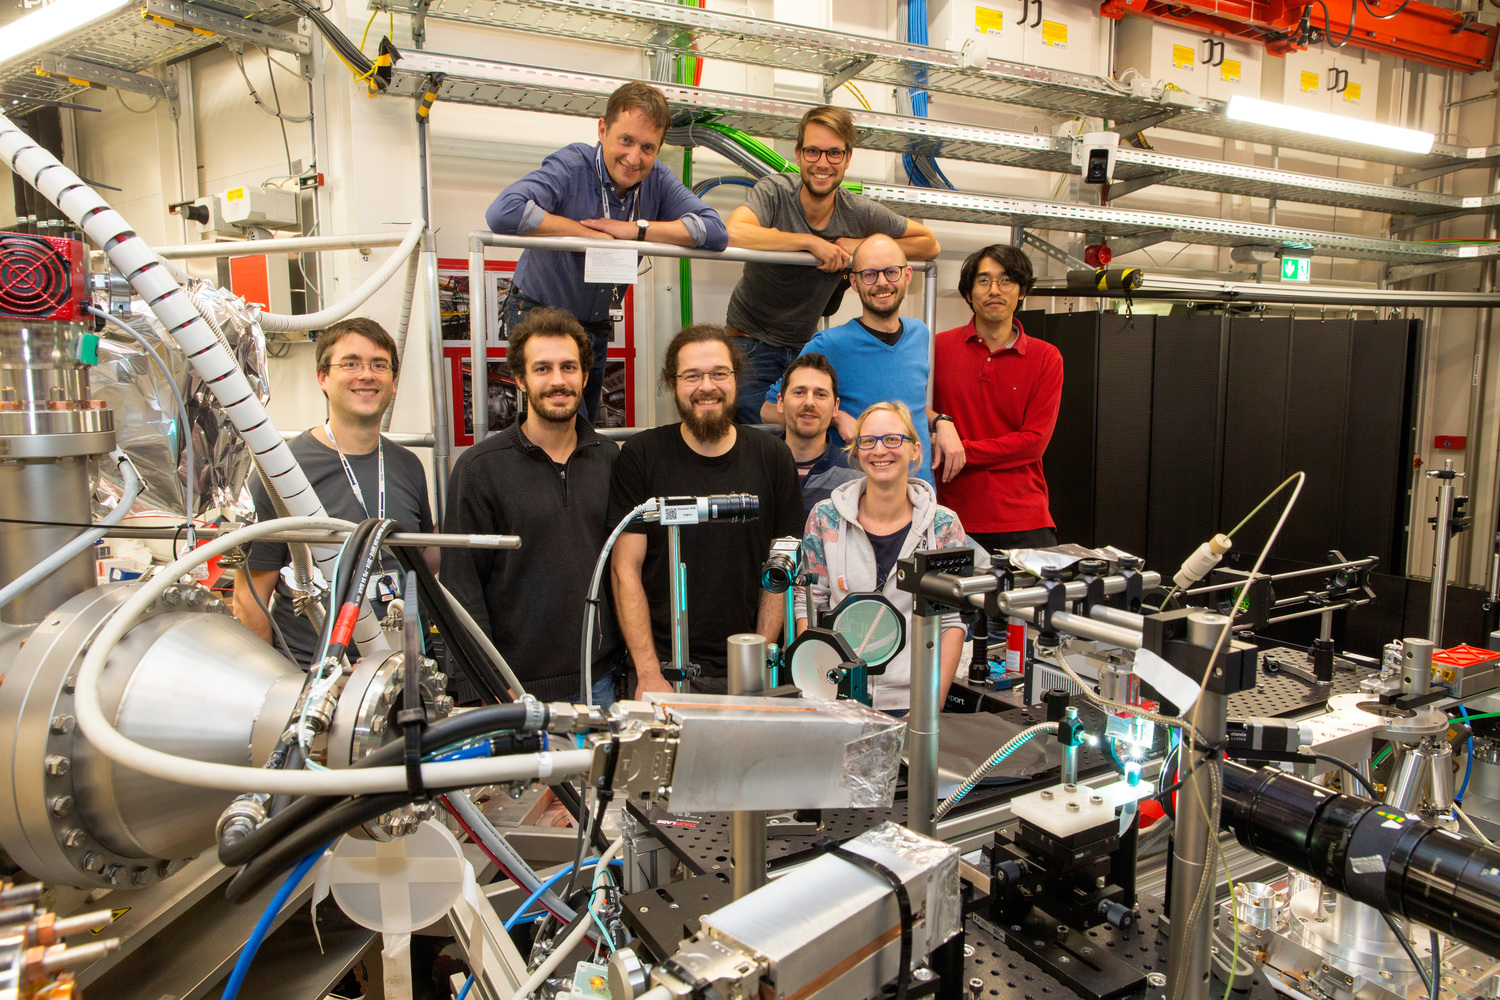 In their experiment, the team led by Professor Tim Salditt (back left) - shown here working in October 2019 - created plasma in water using an intense laser pulse lasting just a few billionths of a second.